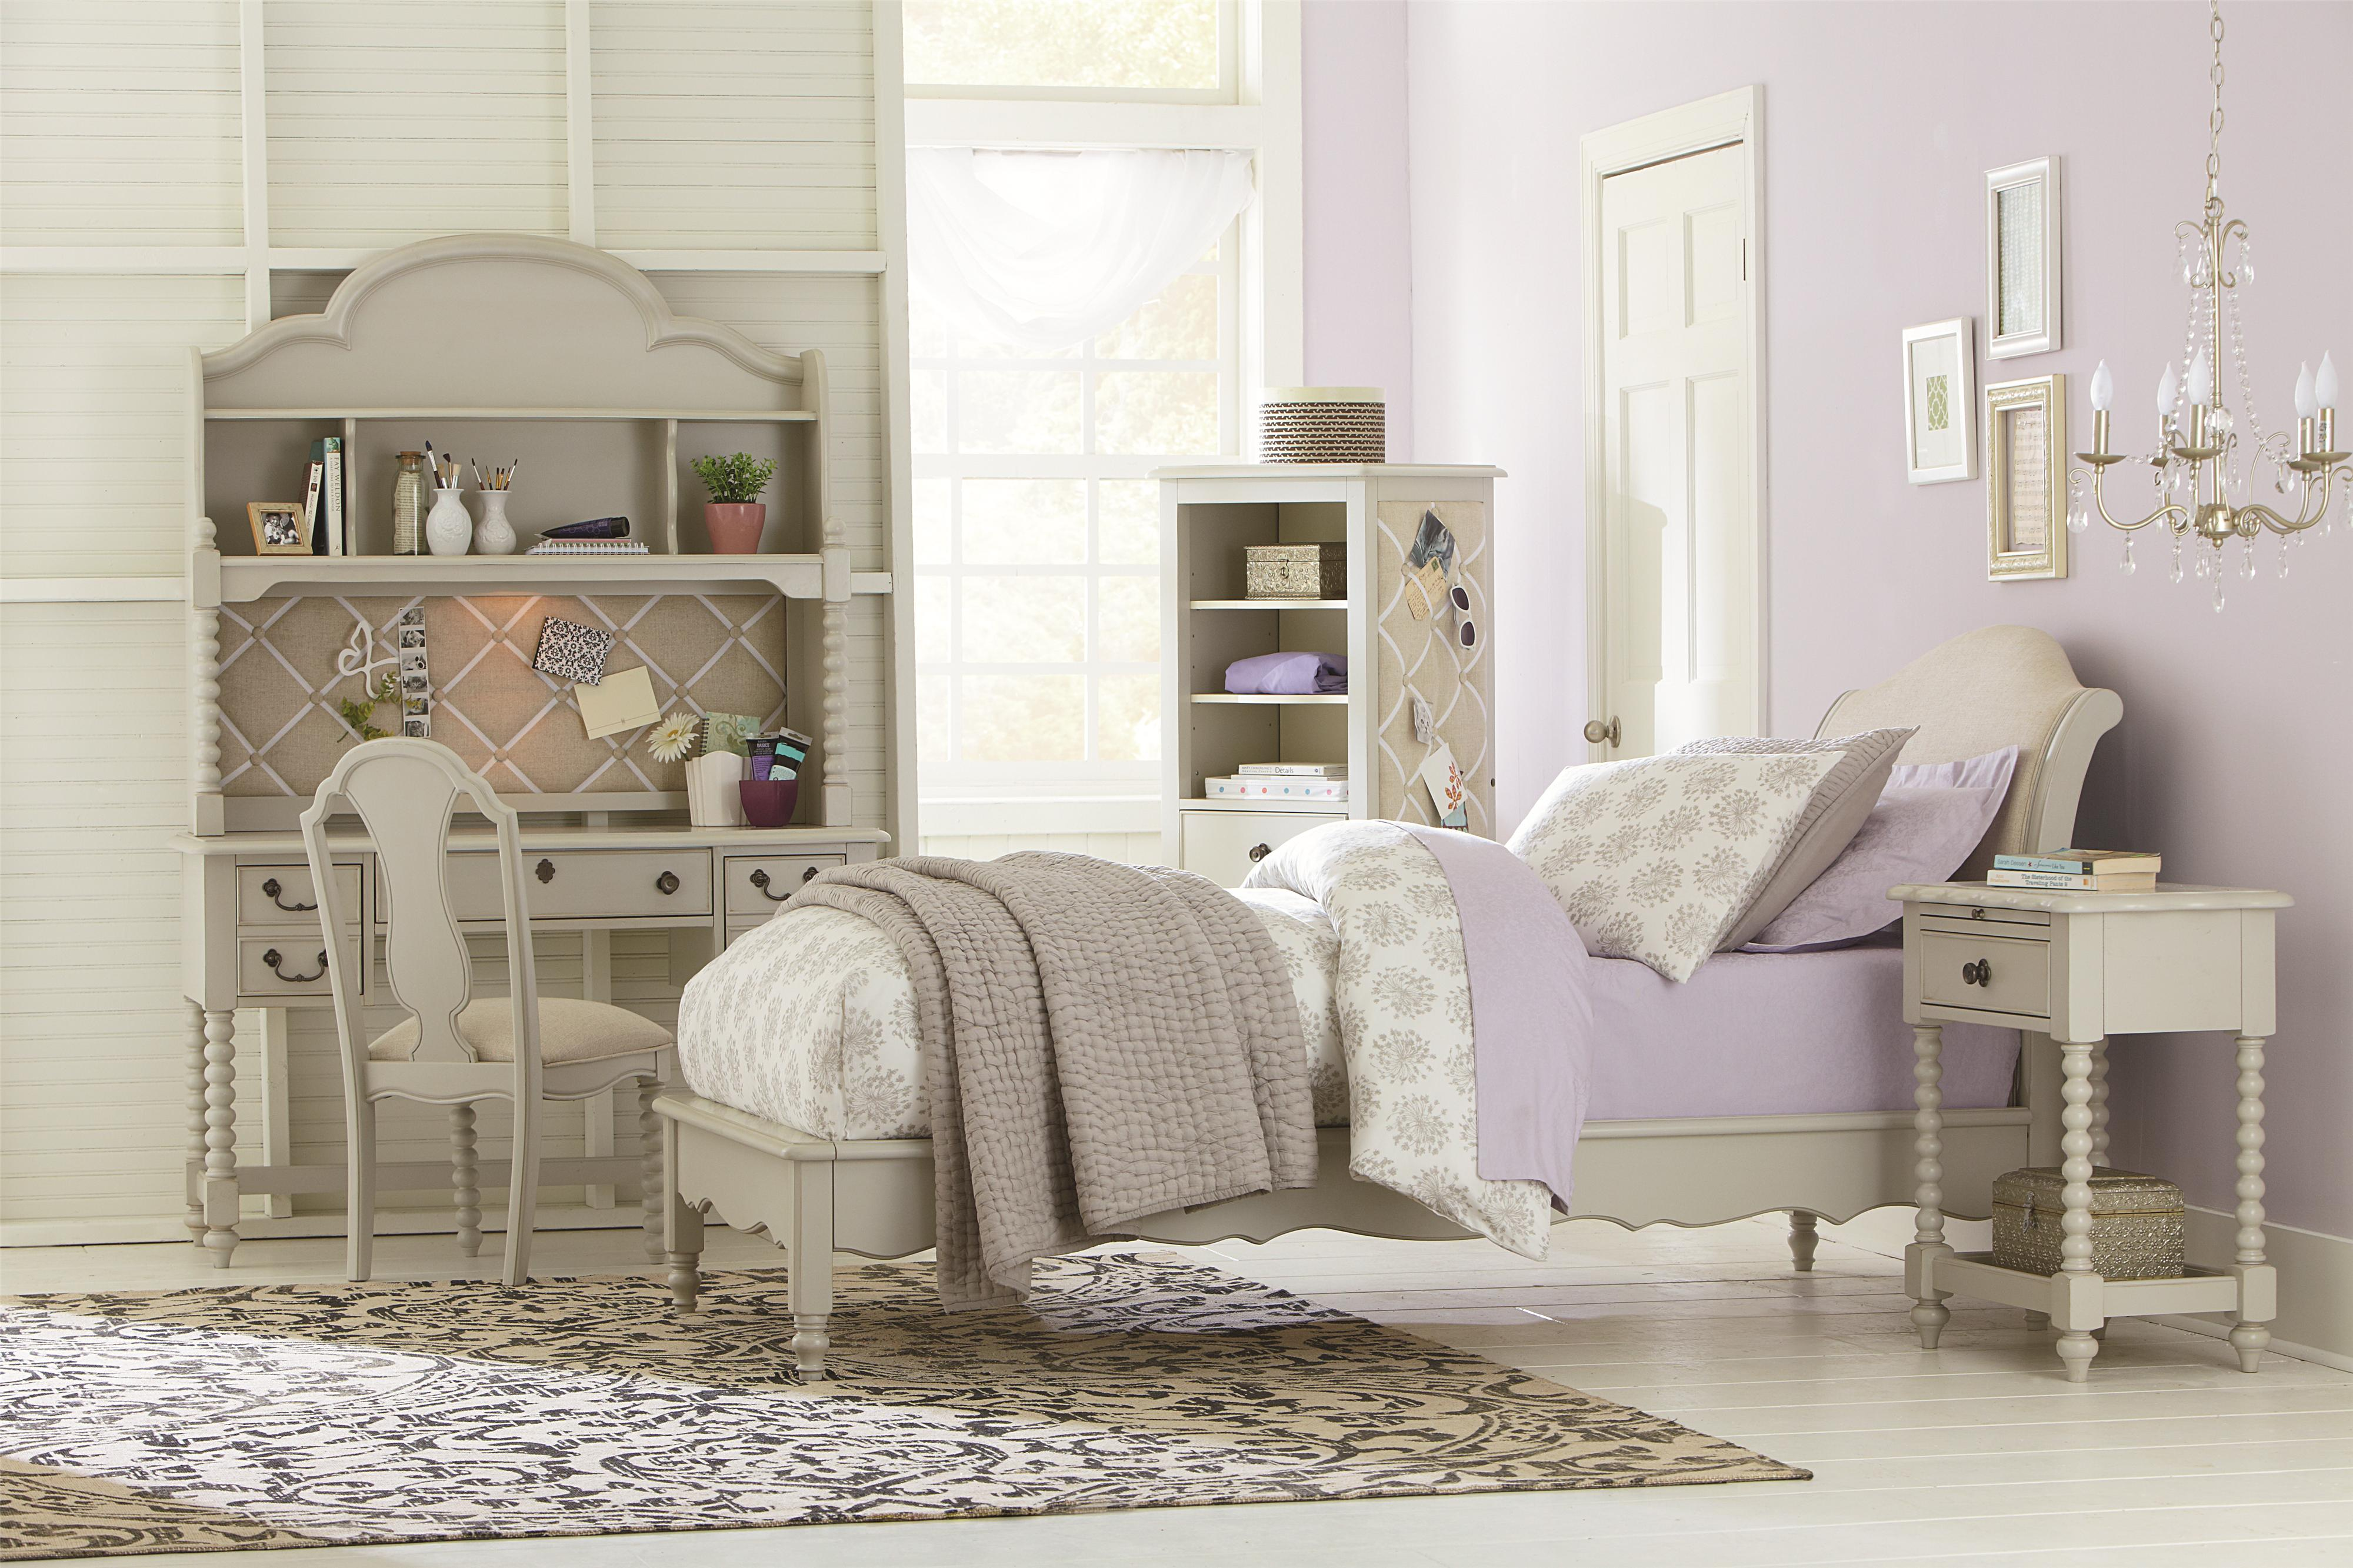 Legacy Classic Kids Inspirations by Wendy Bellissimo Full Bedroom Group 6 - Item Number: 3830 Full Bedroom Group 6